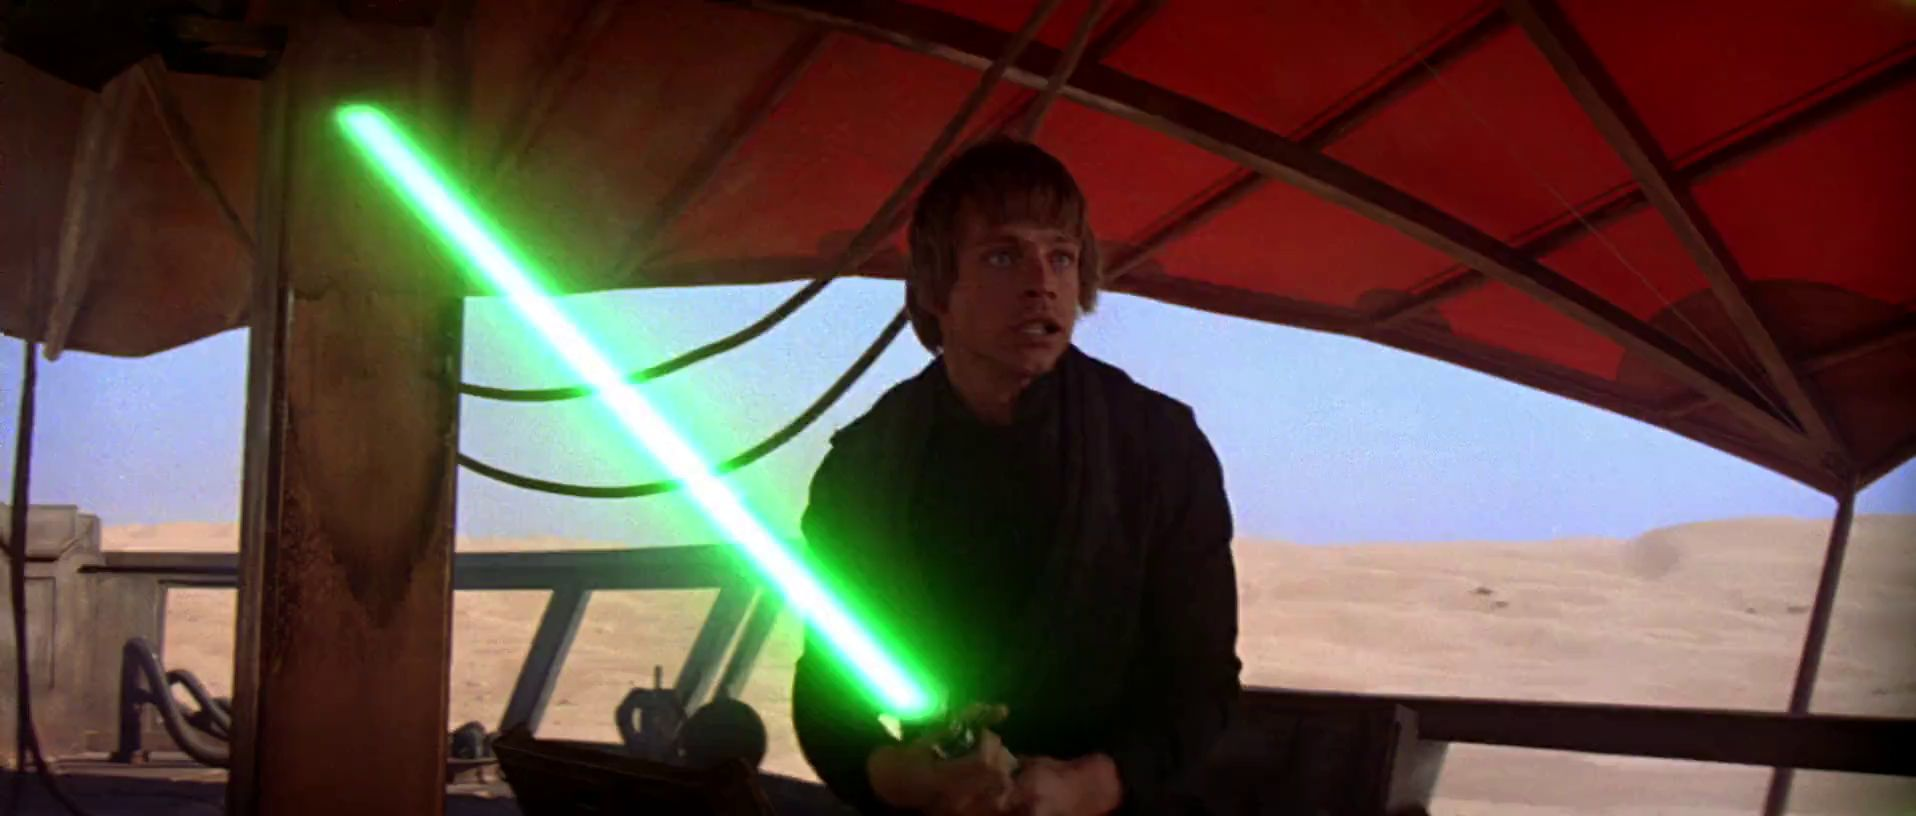 Blue And Green Lightsabers Anakin Padme Leia Luke Skywalker